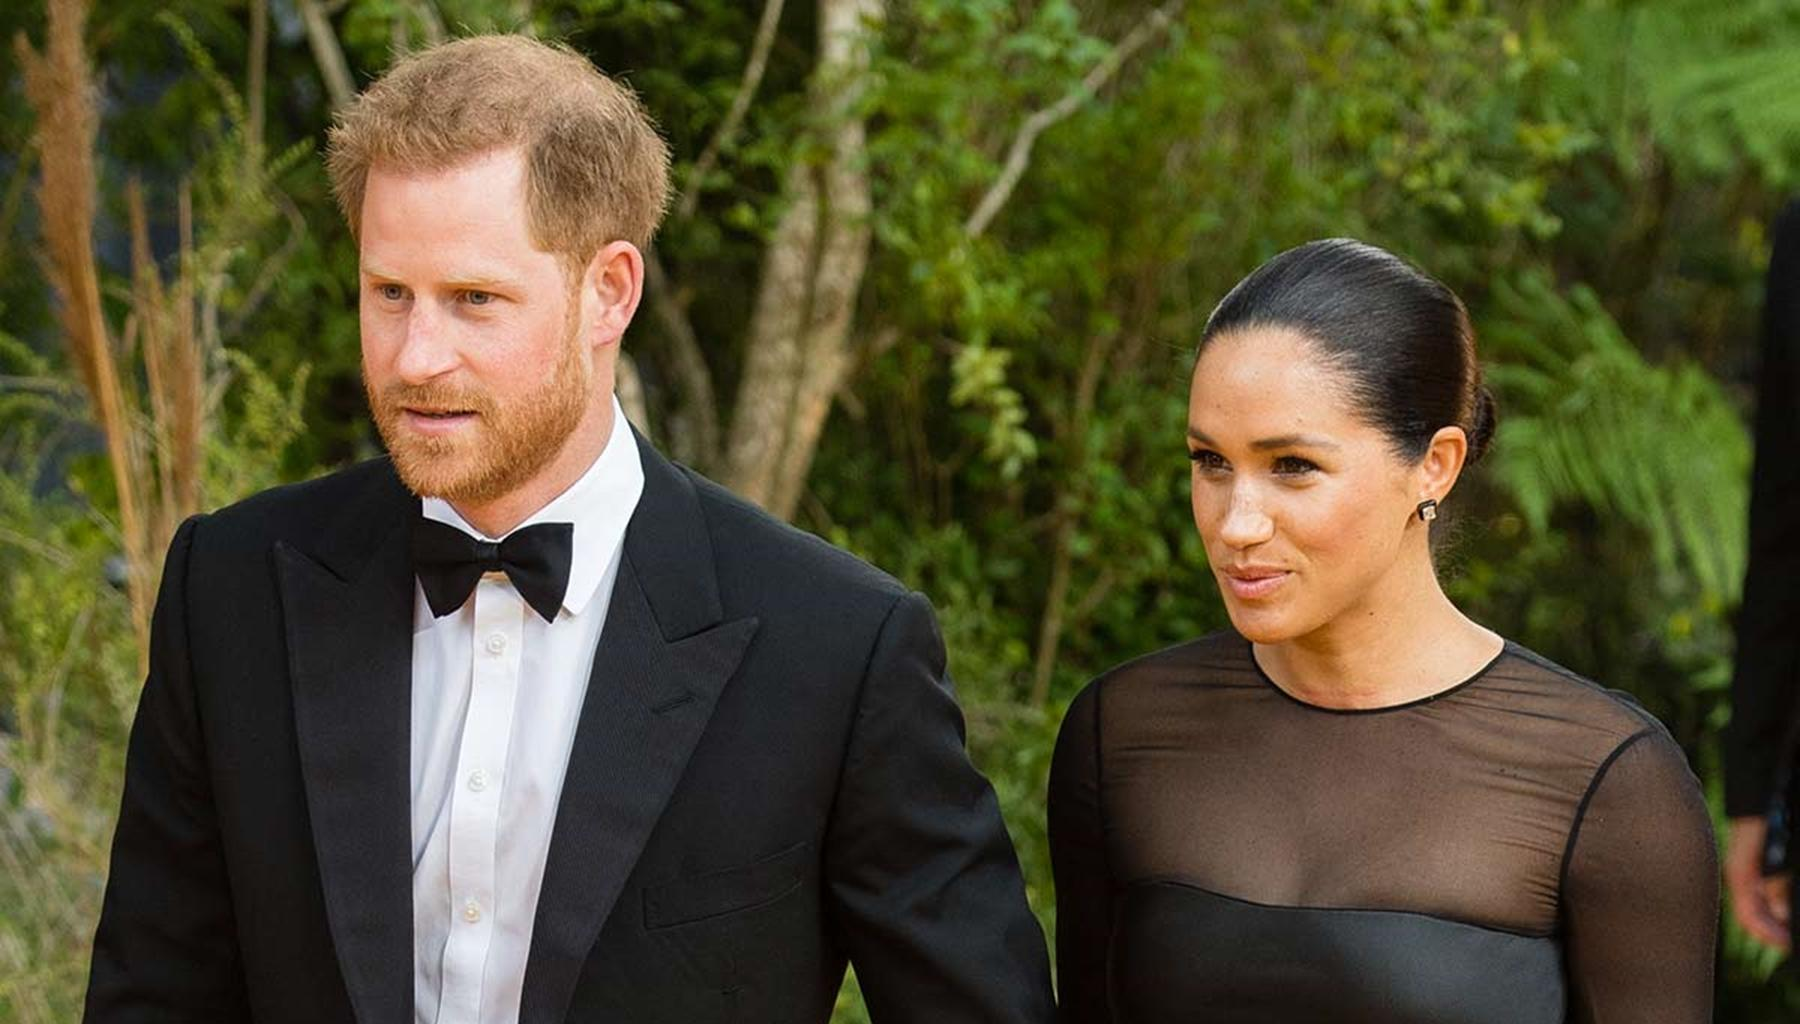 Meghan Markle And Prince Harry Are Slammed For Writing What Critics Call A Disrespectful Message For Prince George's Birthday